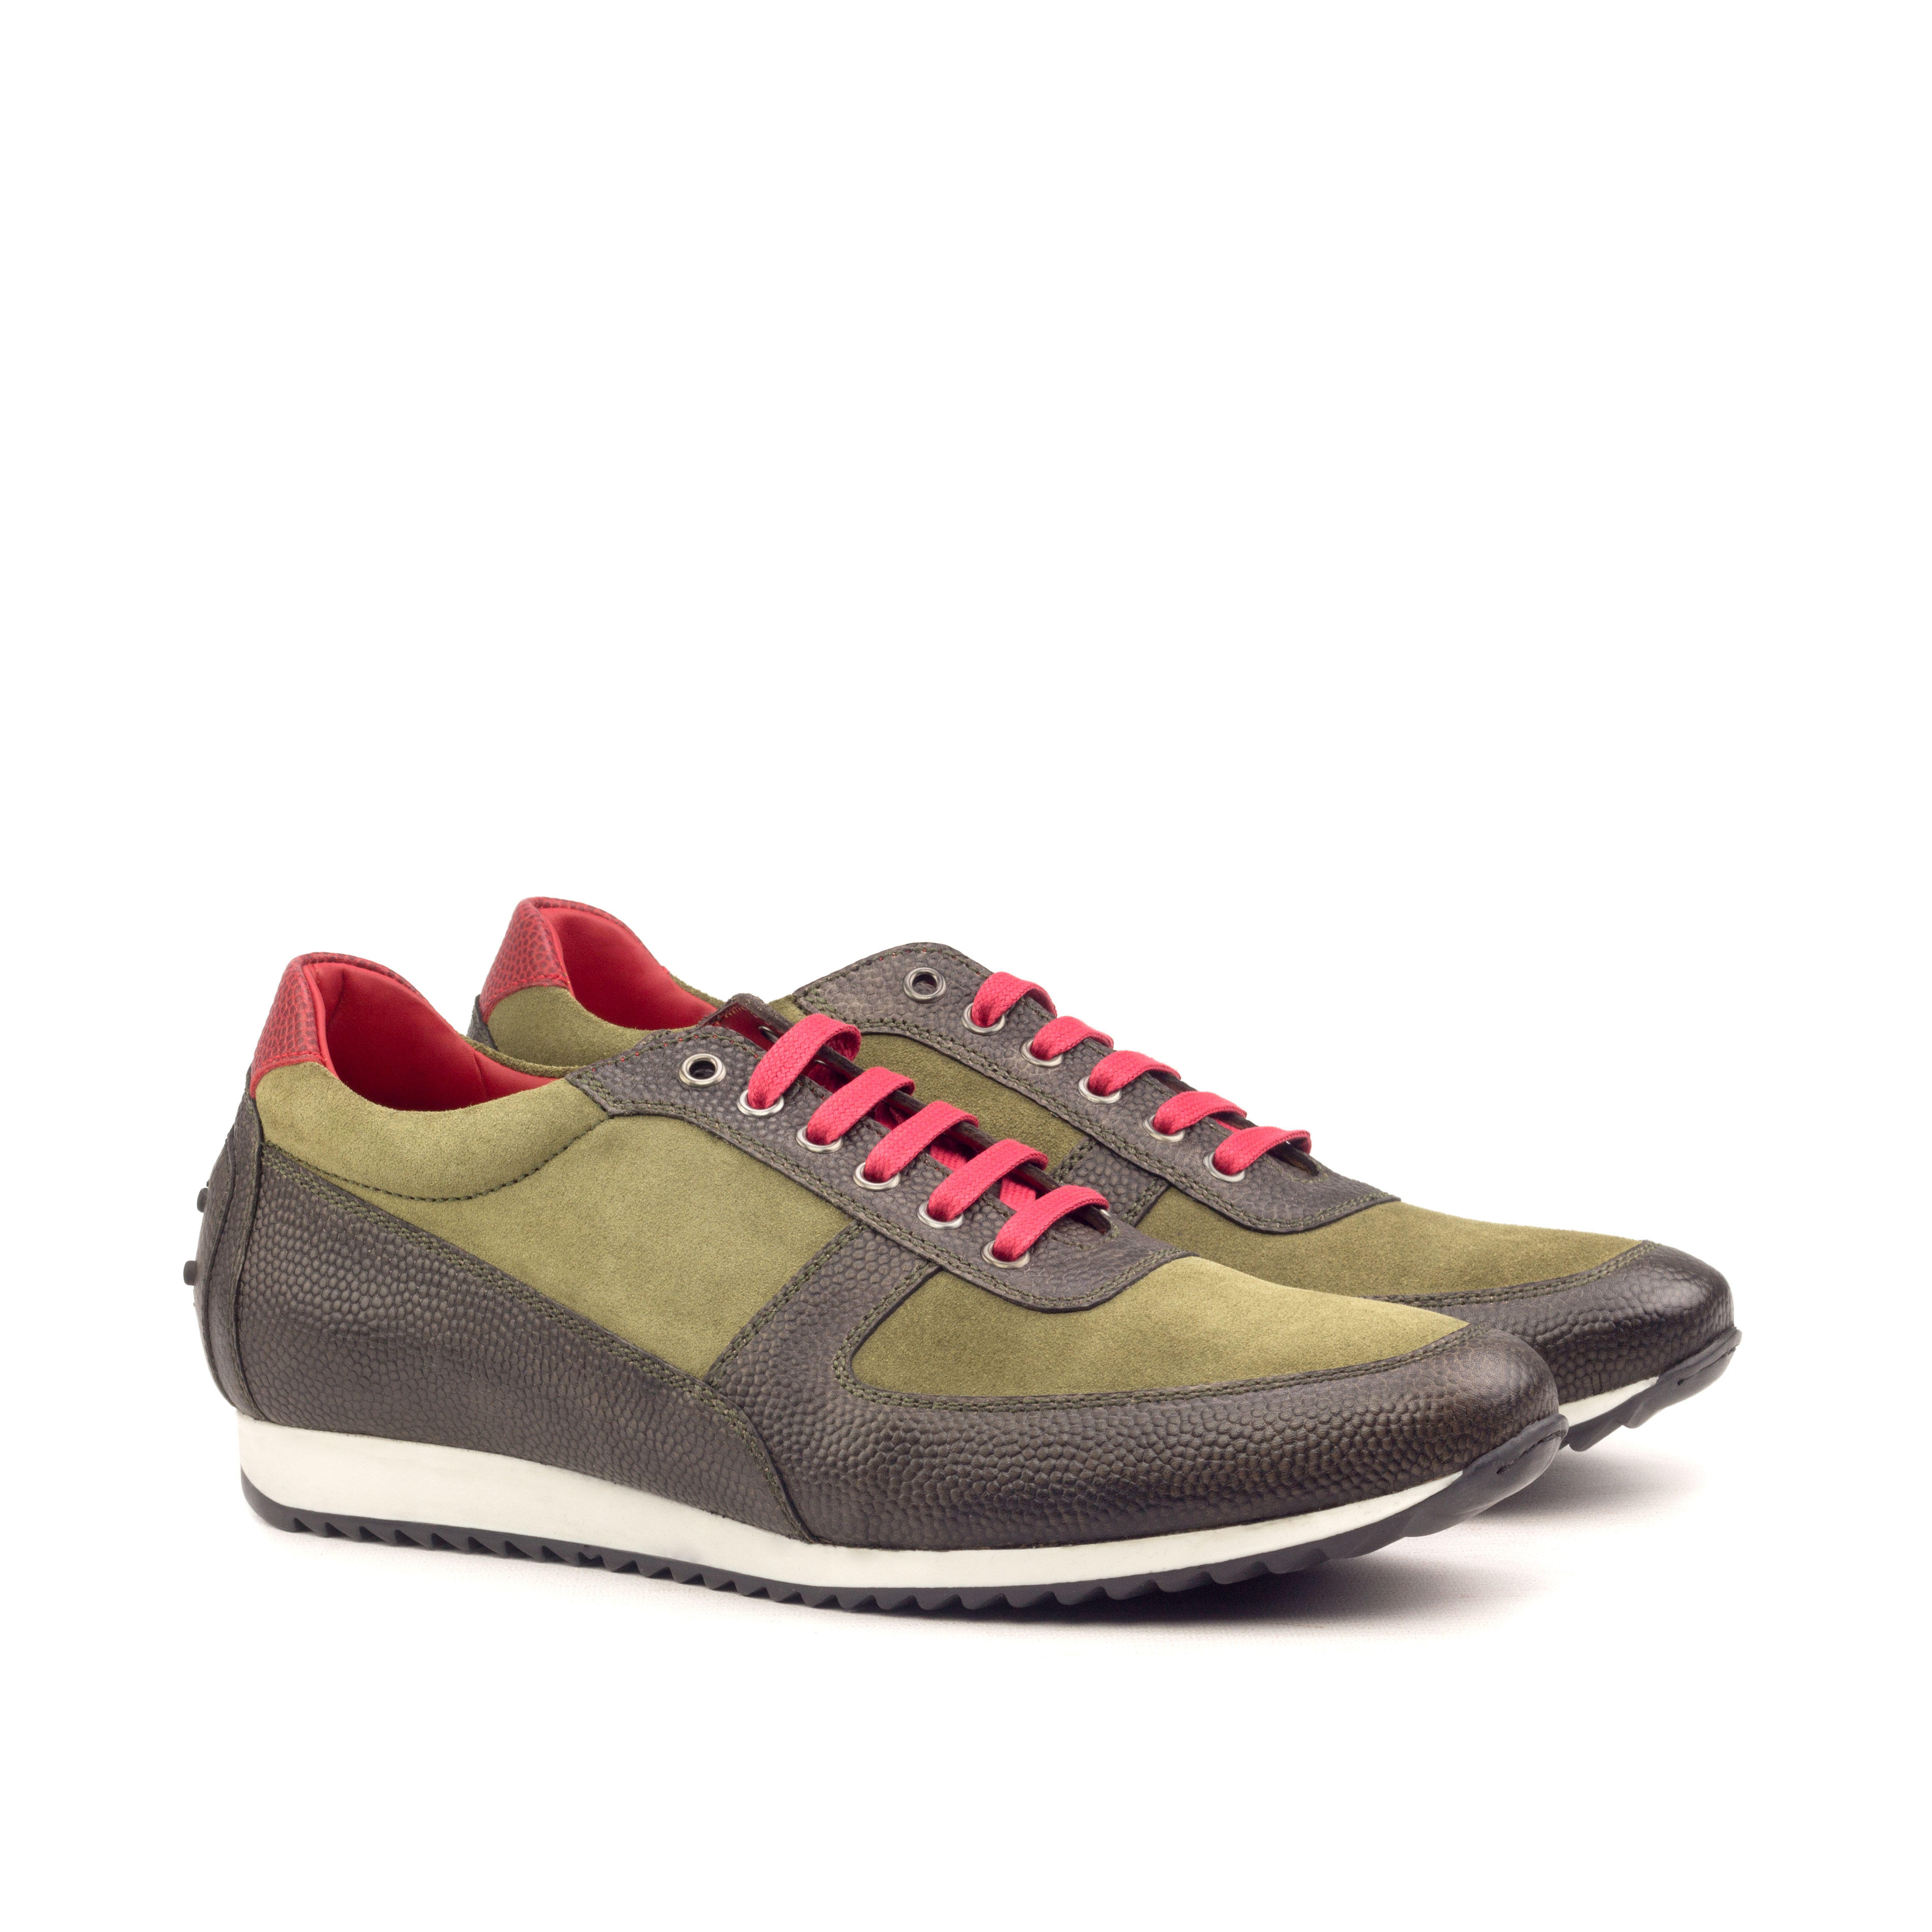 MANOR OF LONDON 'The Runner' Khaki Pebble Grain & Suede Trainer Luxury Custom Initials Monogrammed Front Side View